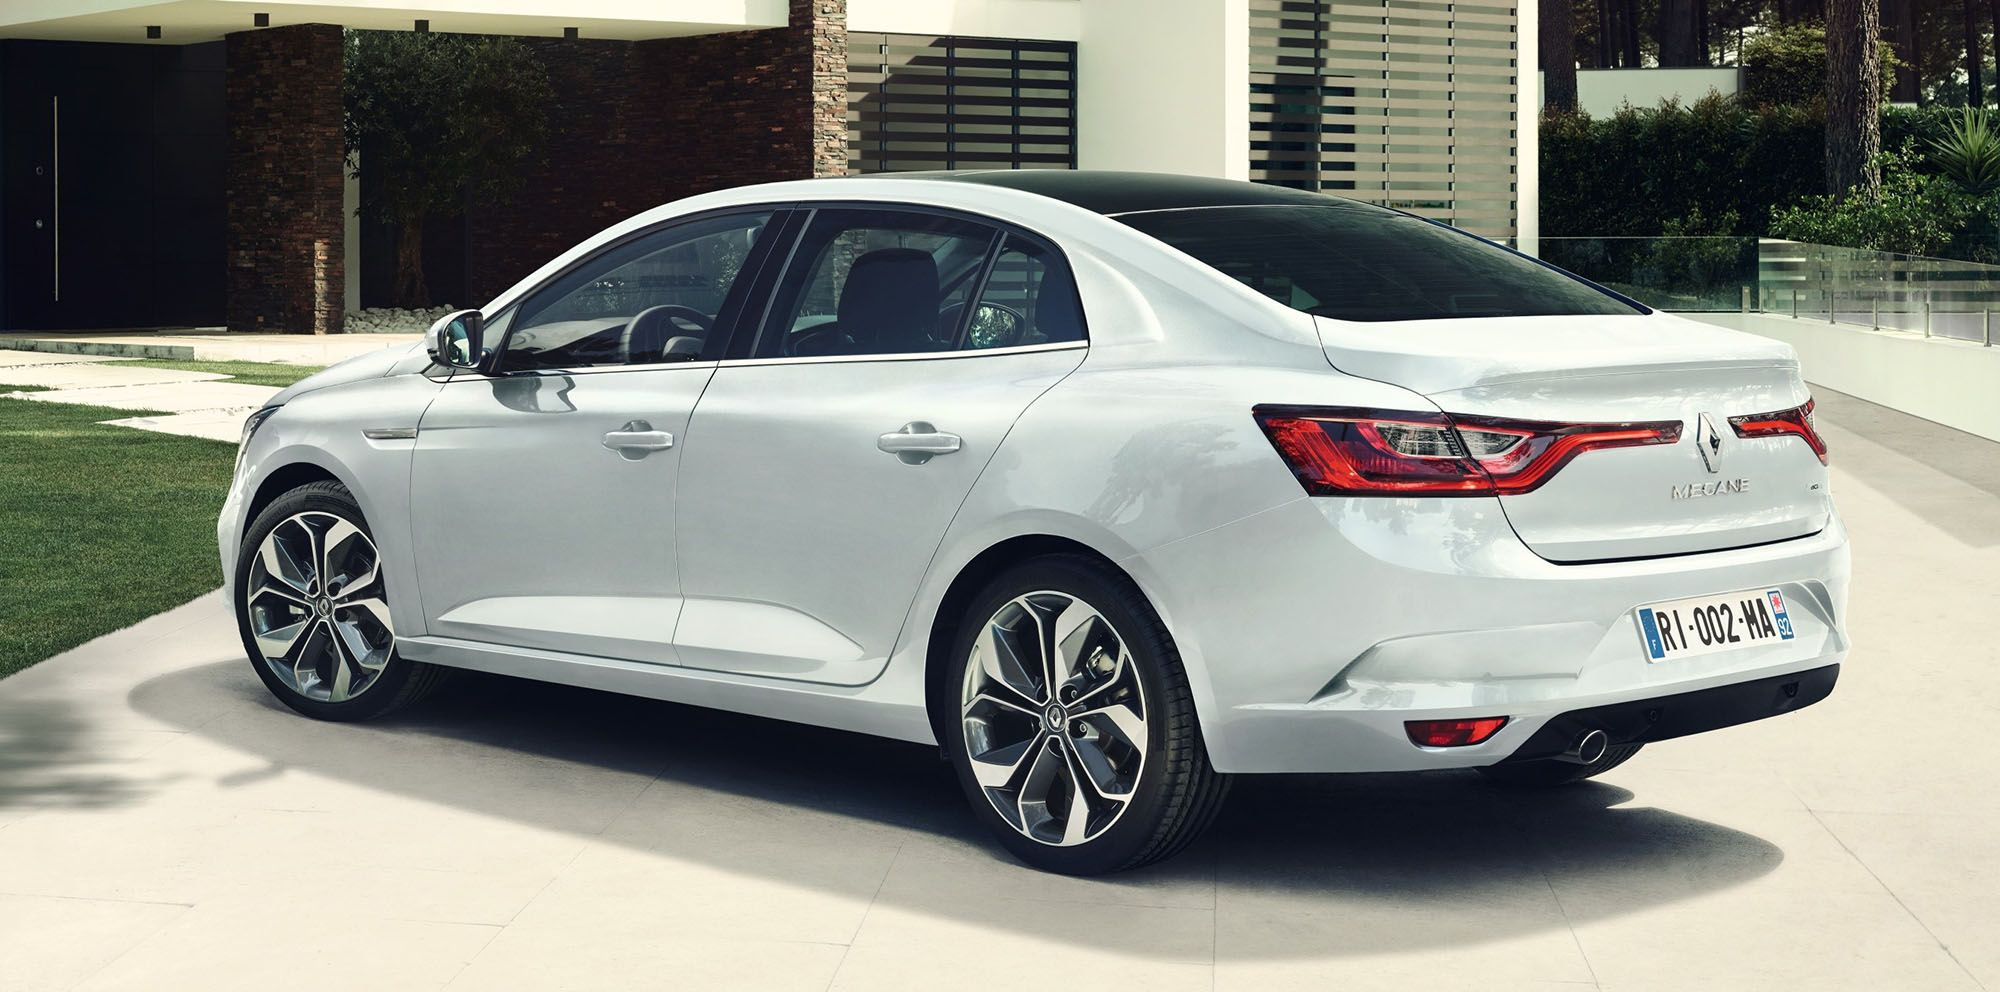 2017 Renault Megane Saloon Rear View With Images Megane